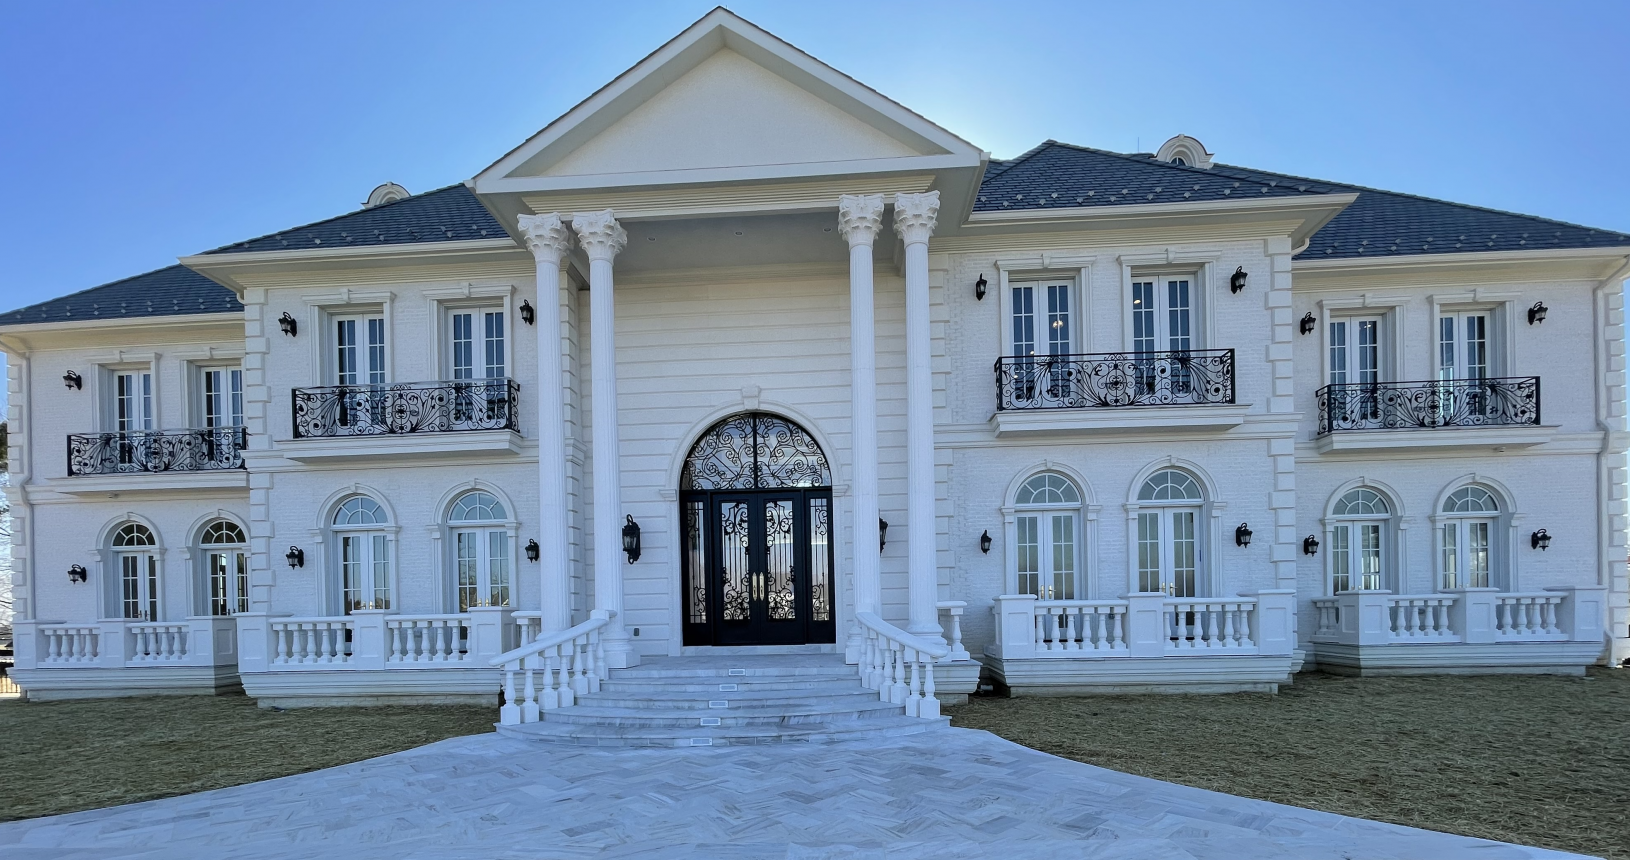 Estate Entrance with white pillars